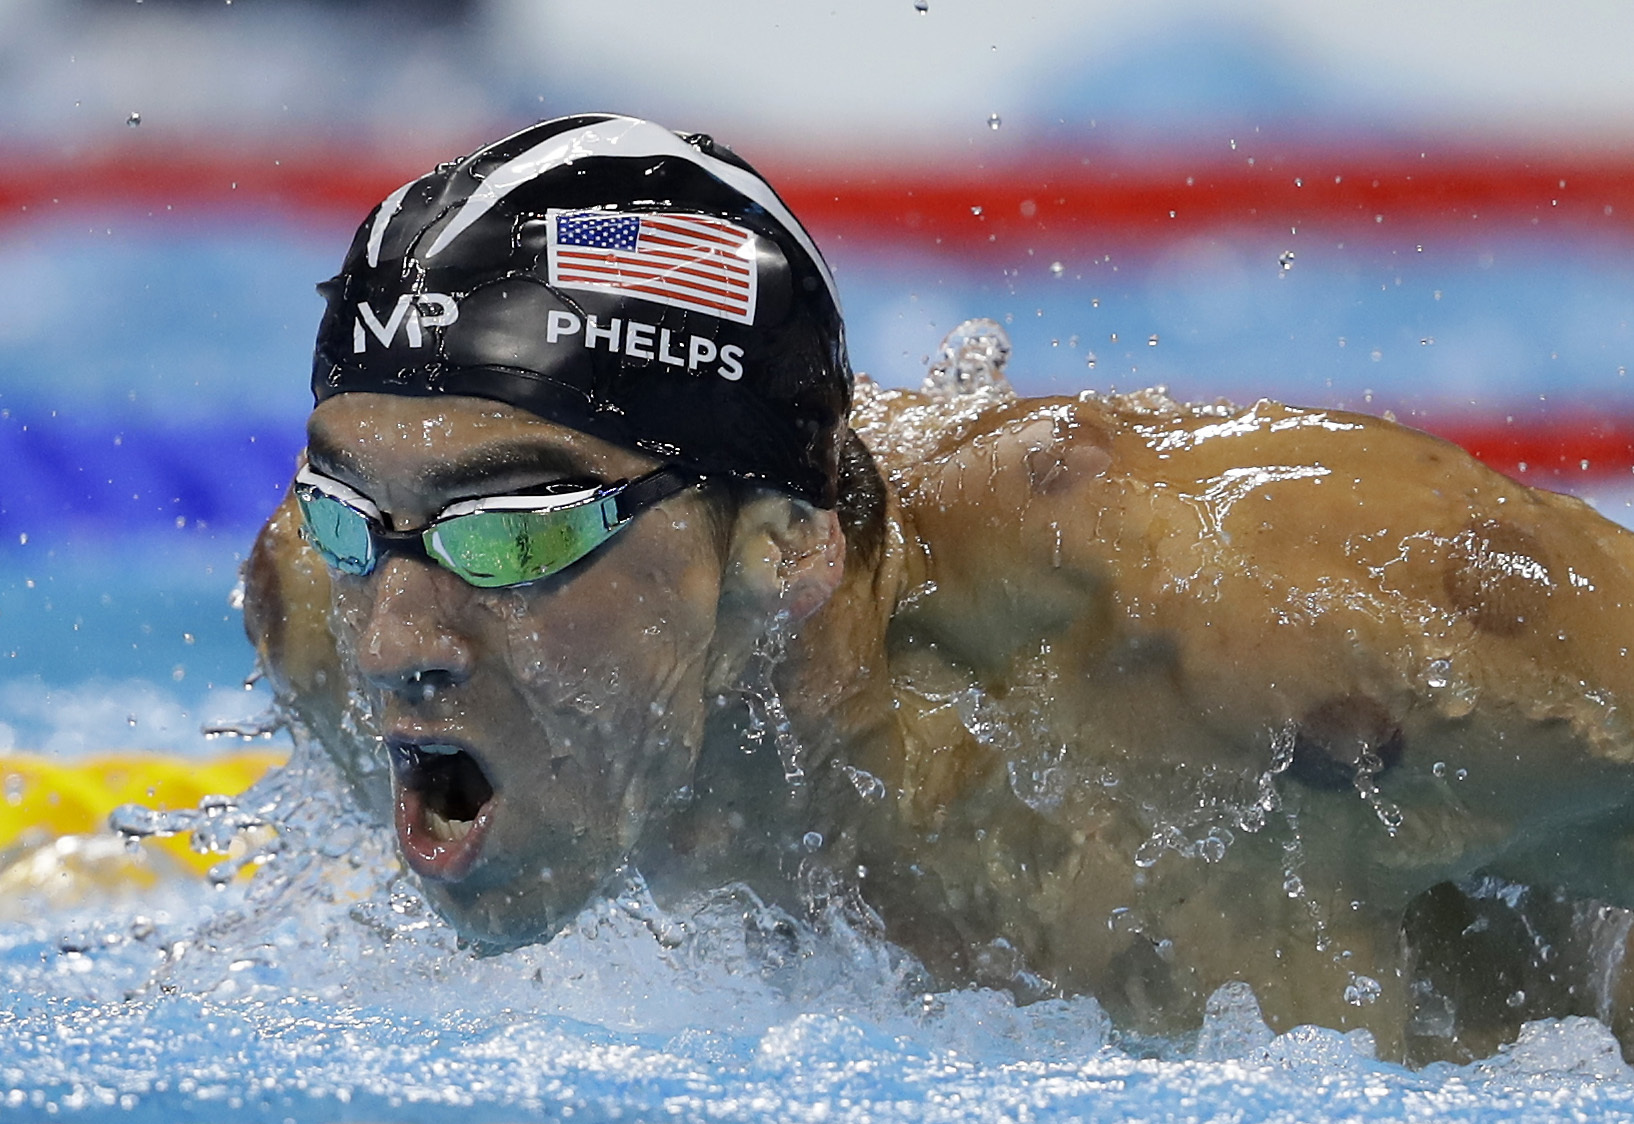 United States' gold medal winner Michael Phelps swims in the men's 200-meter butterfly final during the swimming competitions at the 2016 Summer Olympics, Tuesday, Aug. 9, 2016, in Rio de Janeiro, Brazil. (AP Photo/Michael Sohn)